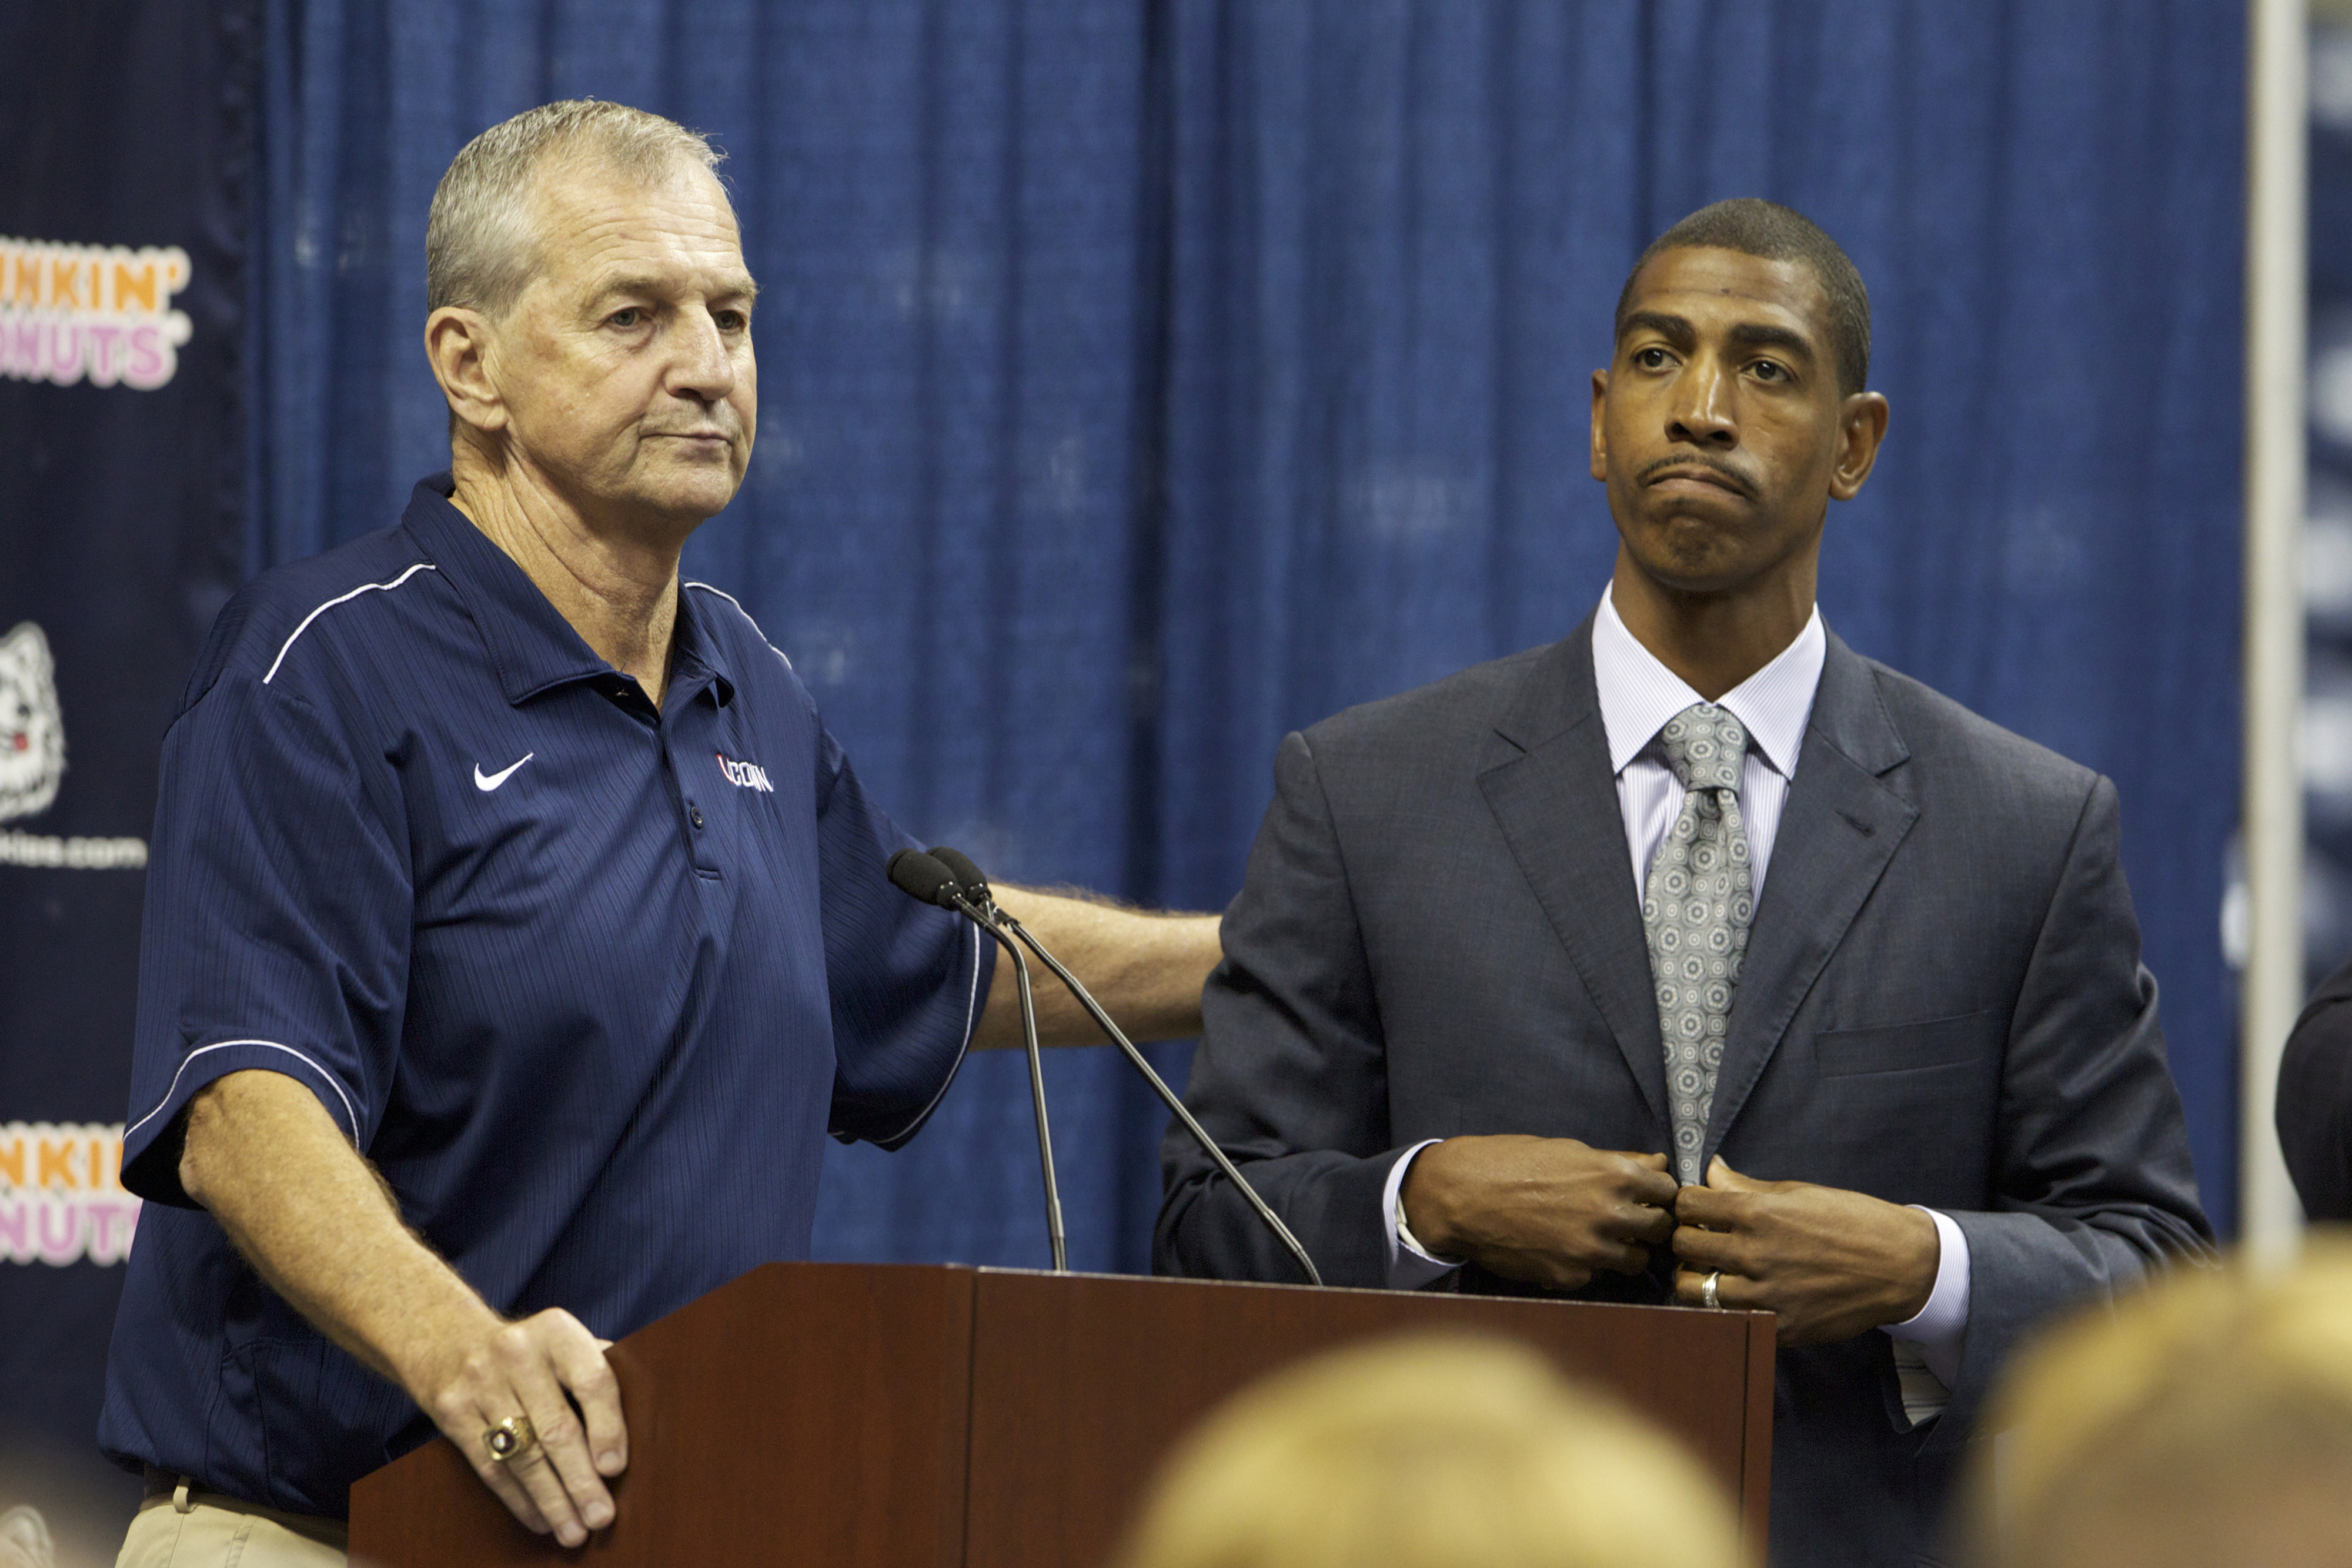 We know what the guy on the left has done - how do we evaluate that replacement coach to his right? How does any school replace a legend?